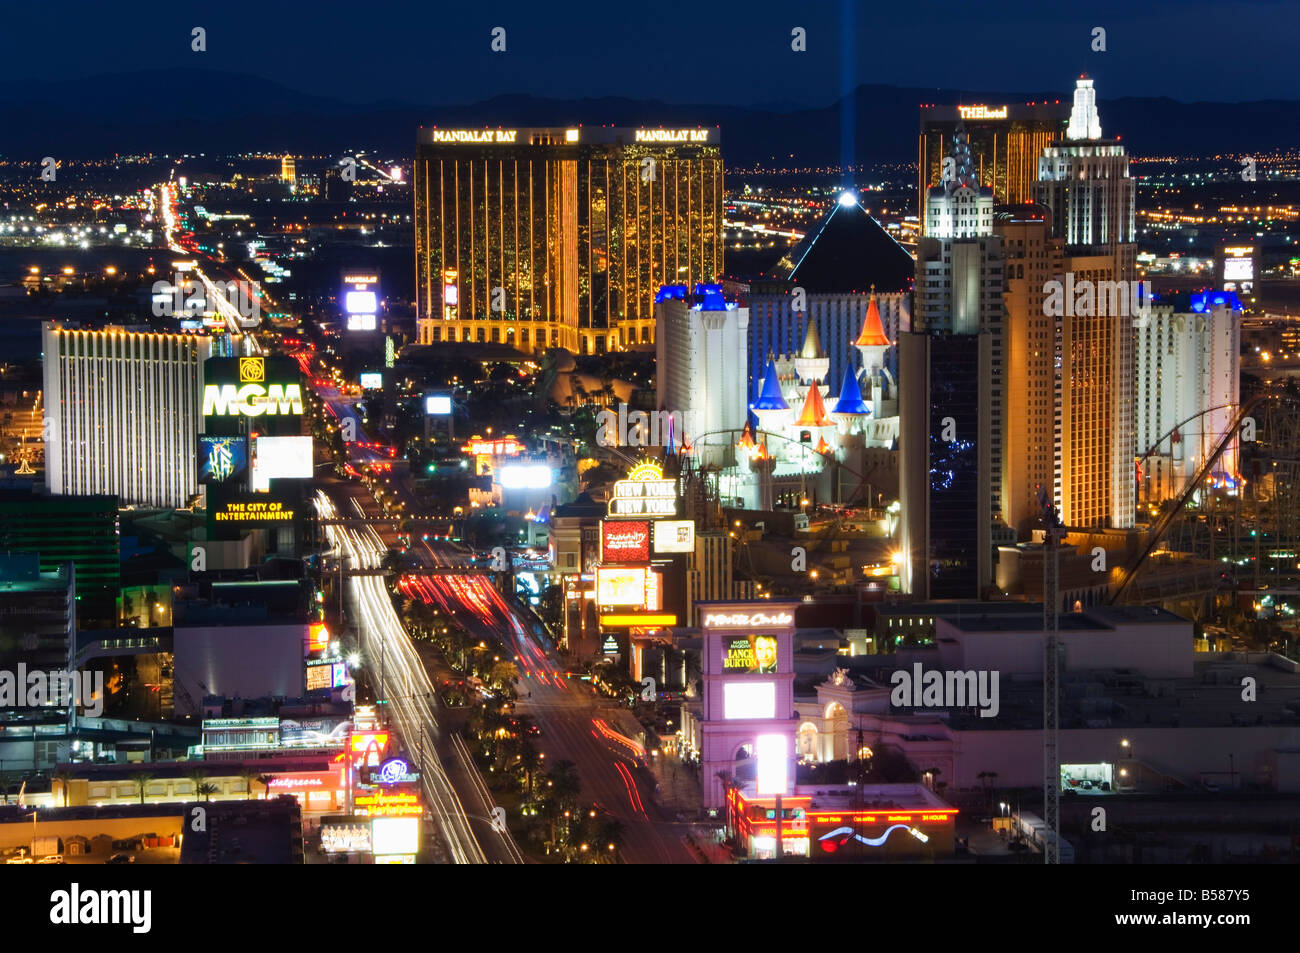 Neon lights of the The Strip at night, Las Vegas, Nevada, United States of America, North America - Stock Image